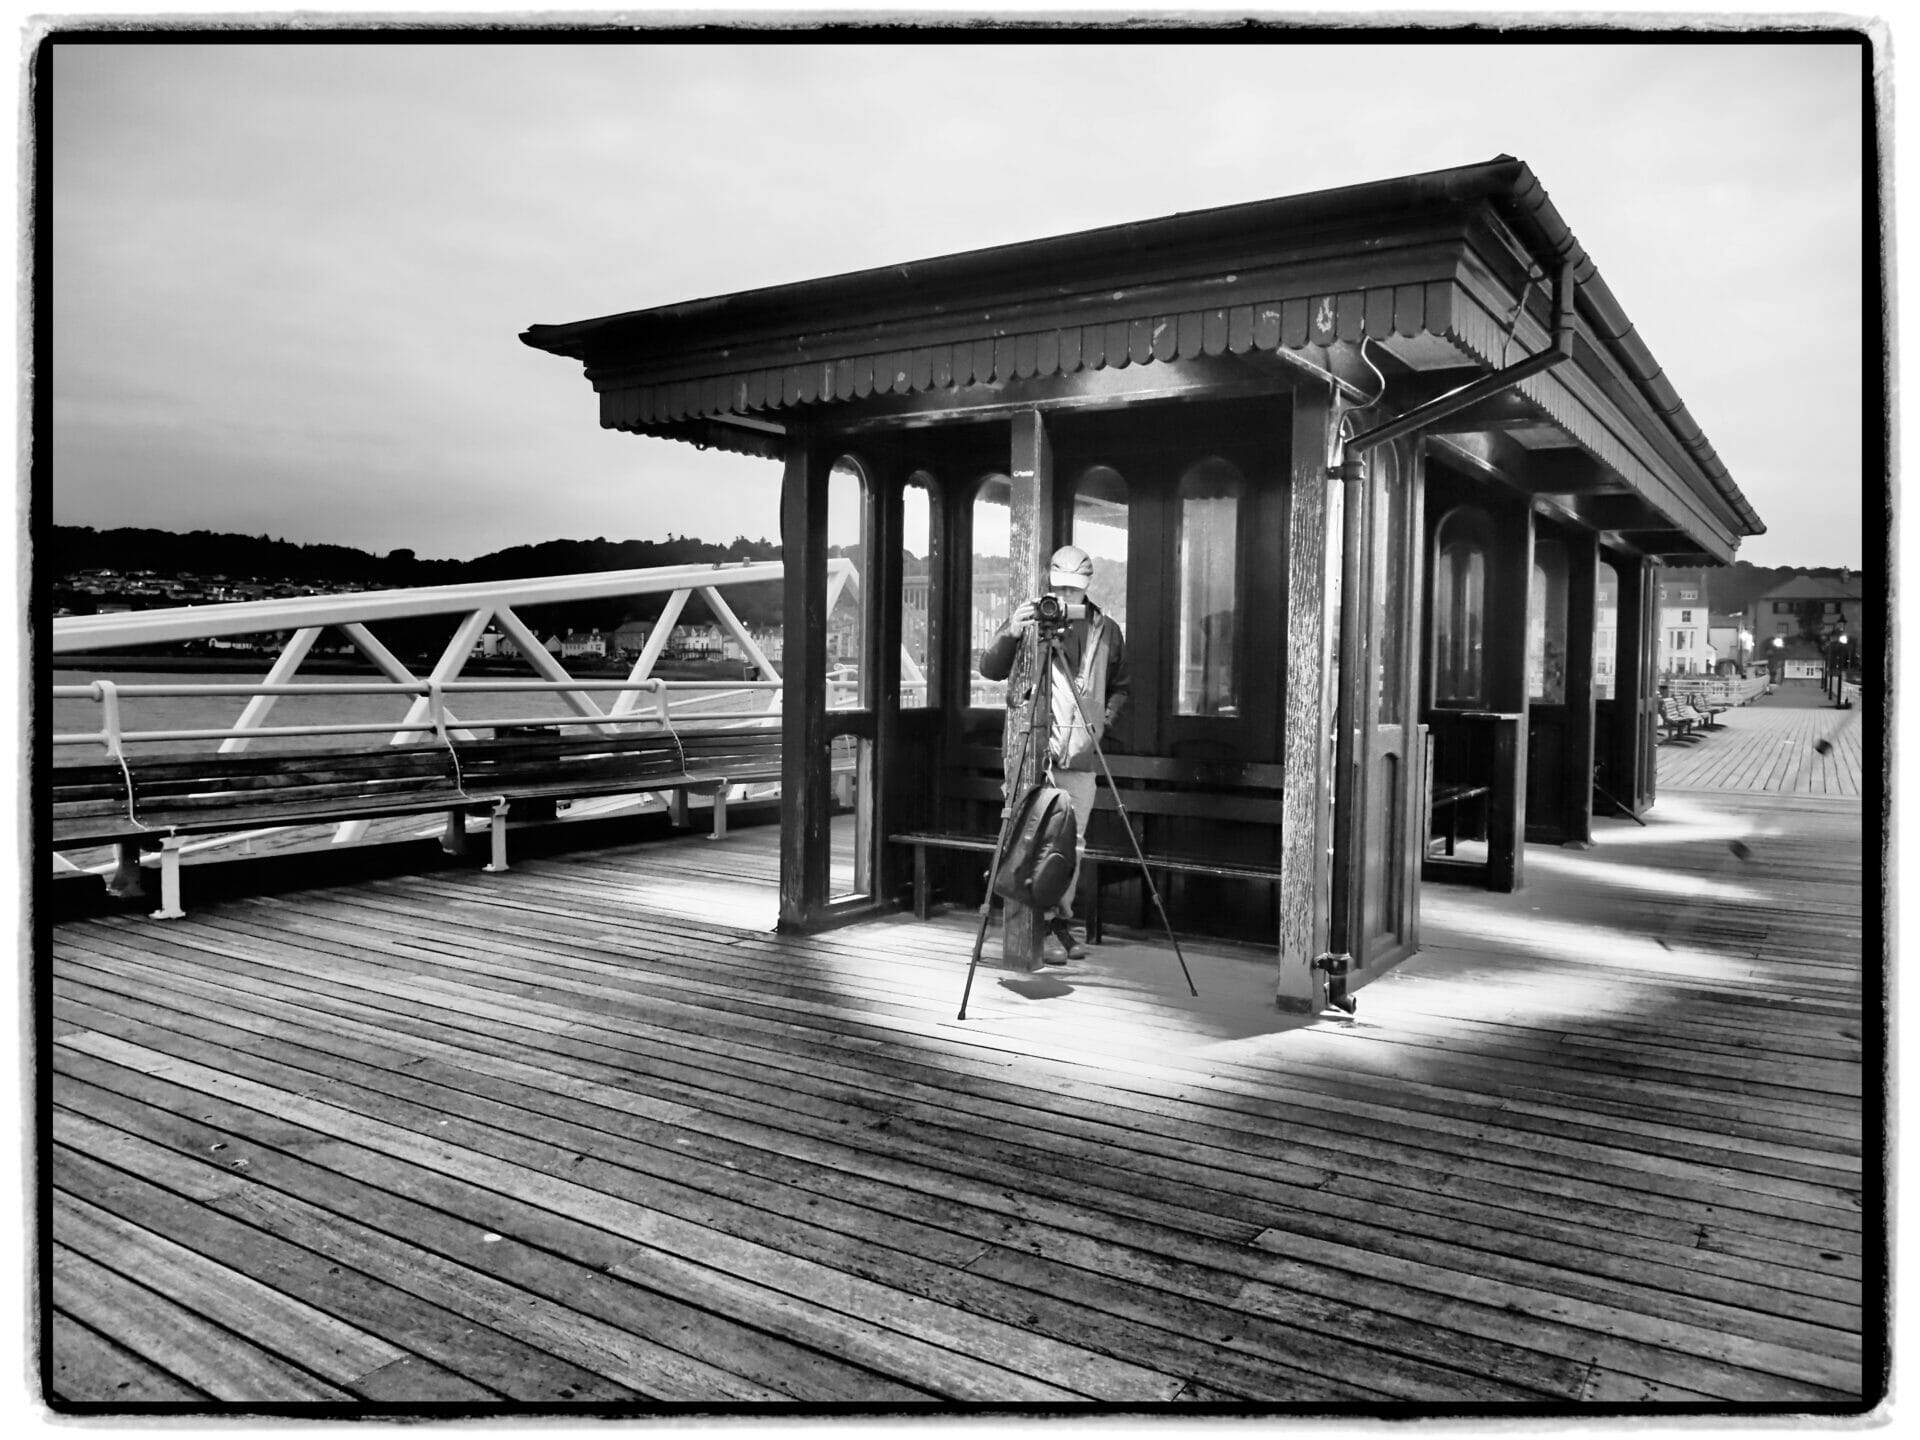 Black and White Photo of the shelter on Beaumaris Pier on Anglesey with a photographer taking a photo on a Welshot Photographic Workshop